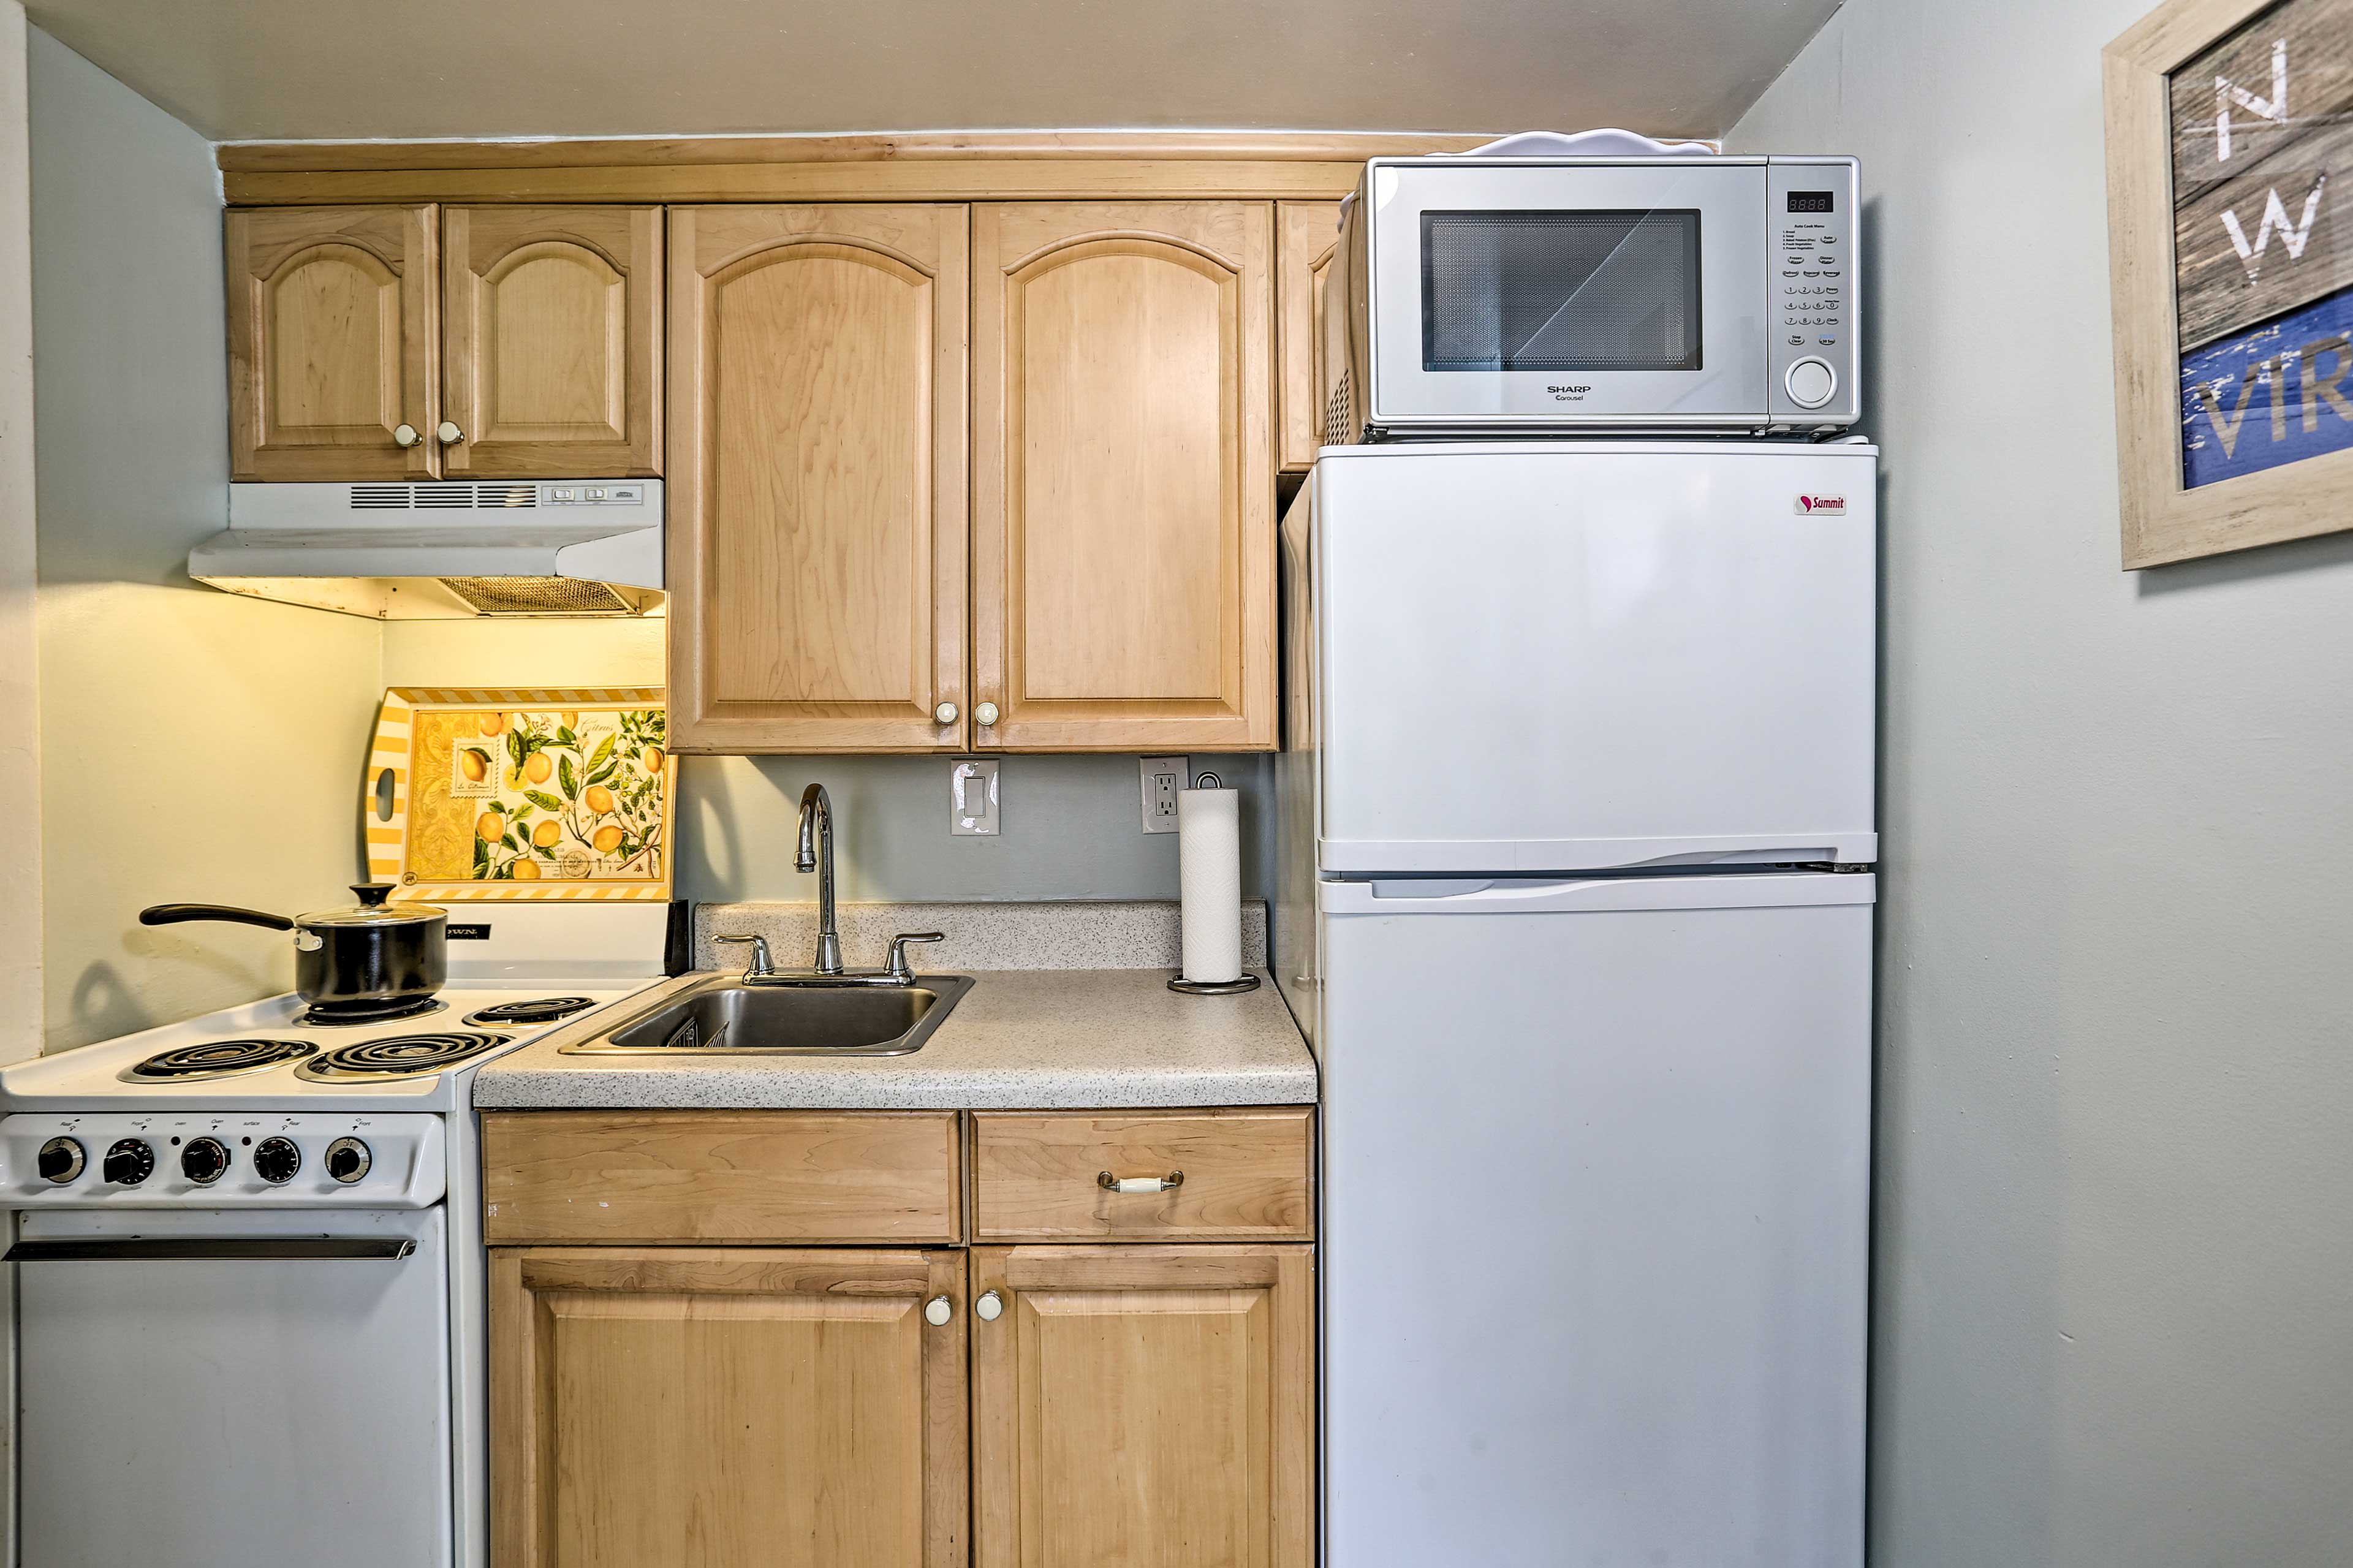 Find paper towels, trash bags, dish soap and other essentials when you arrive.